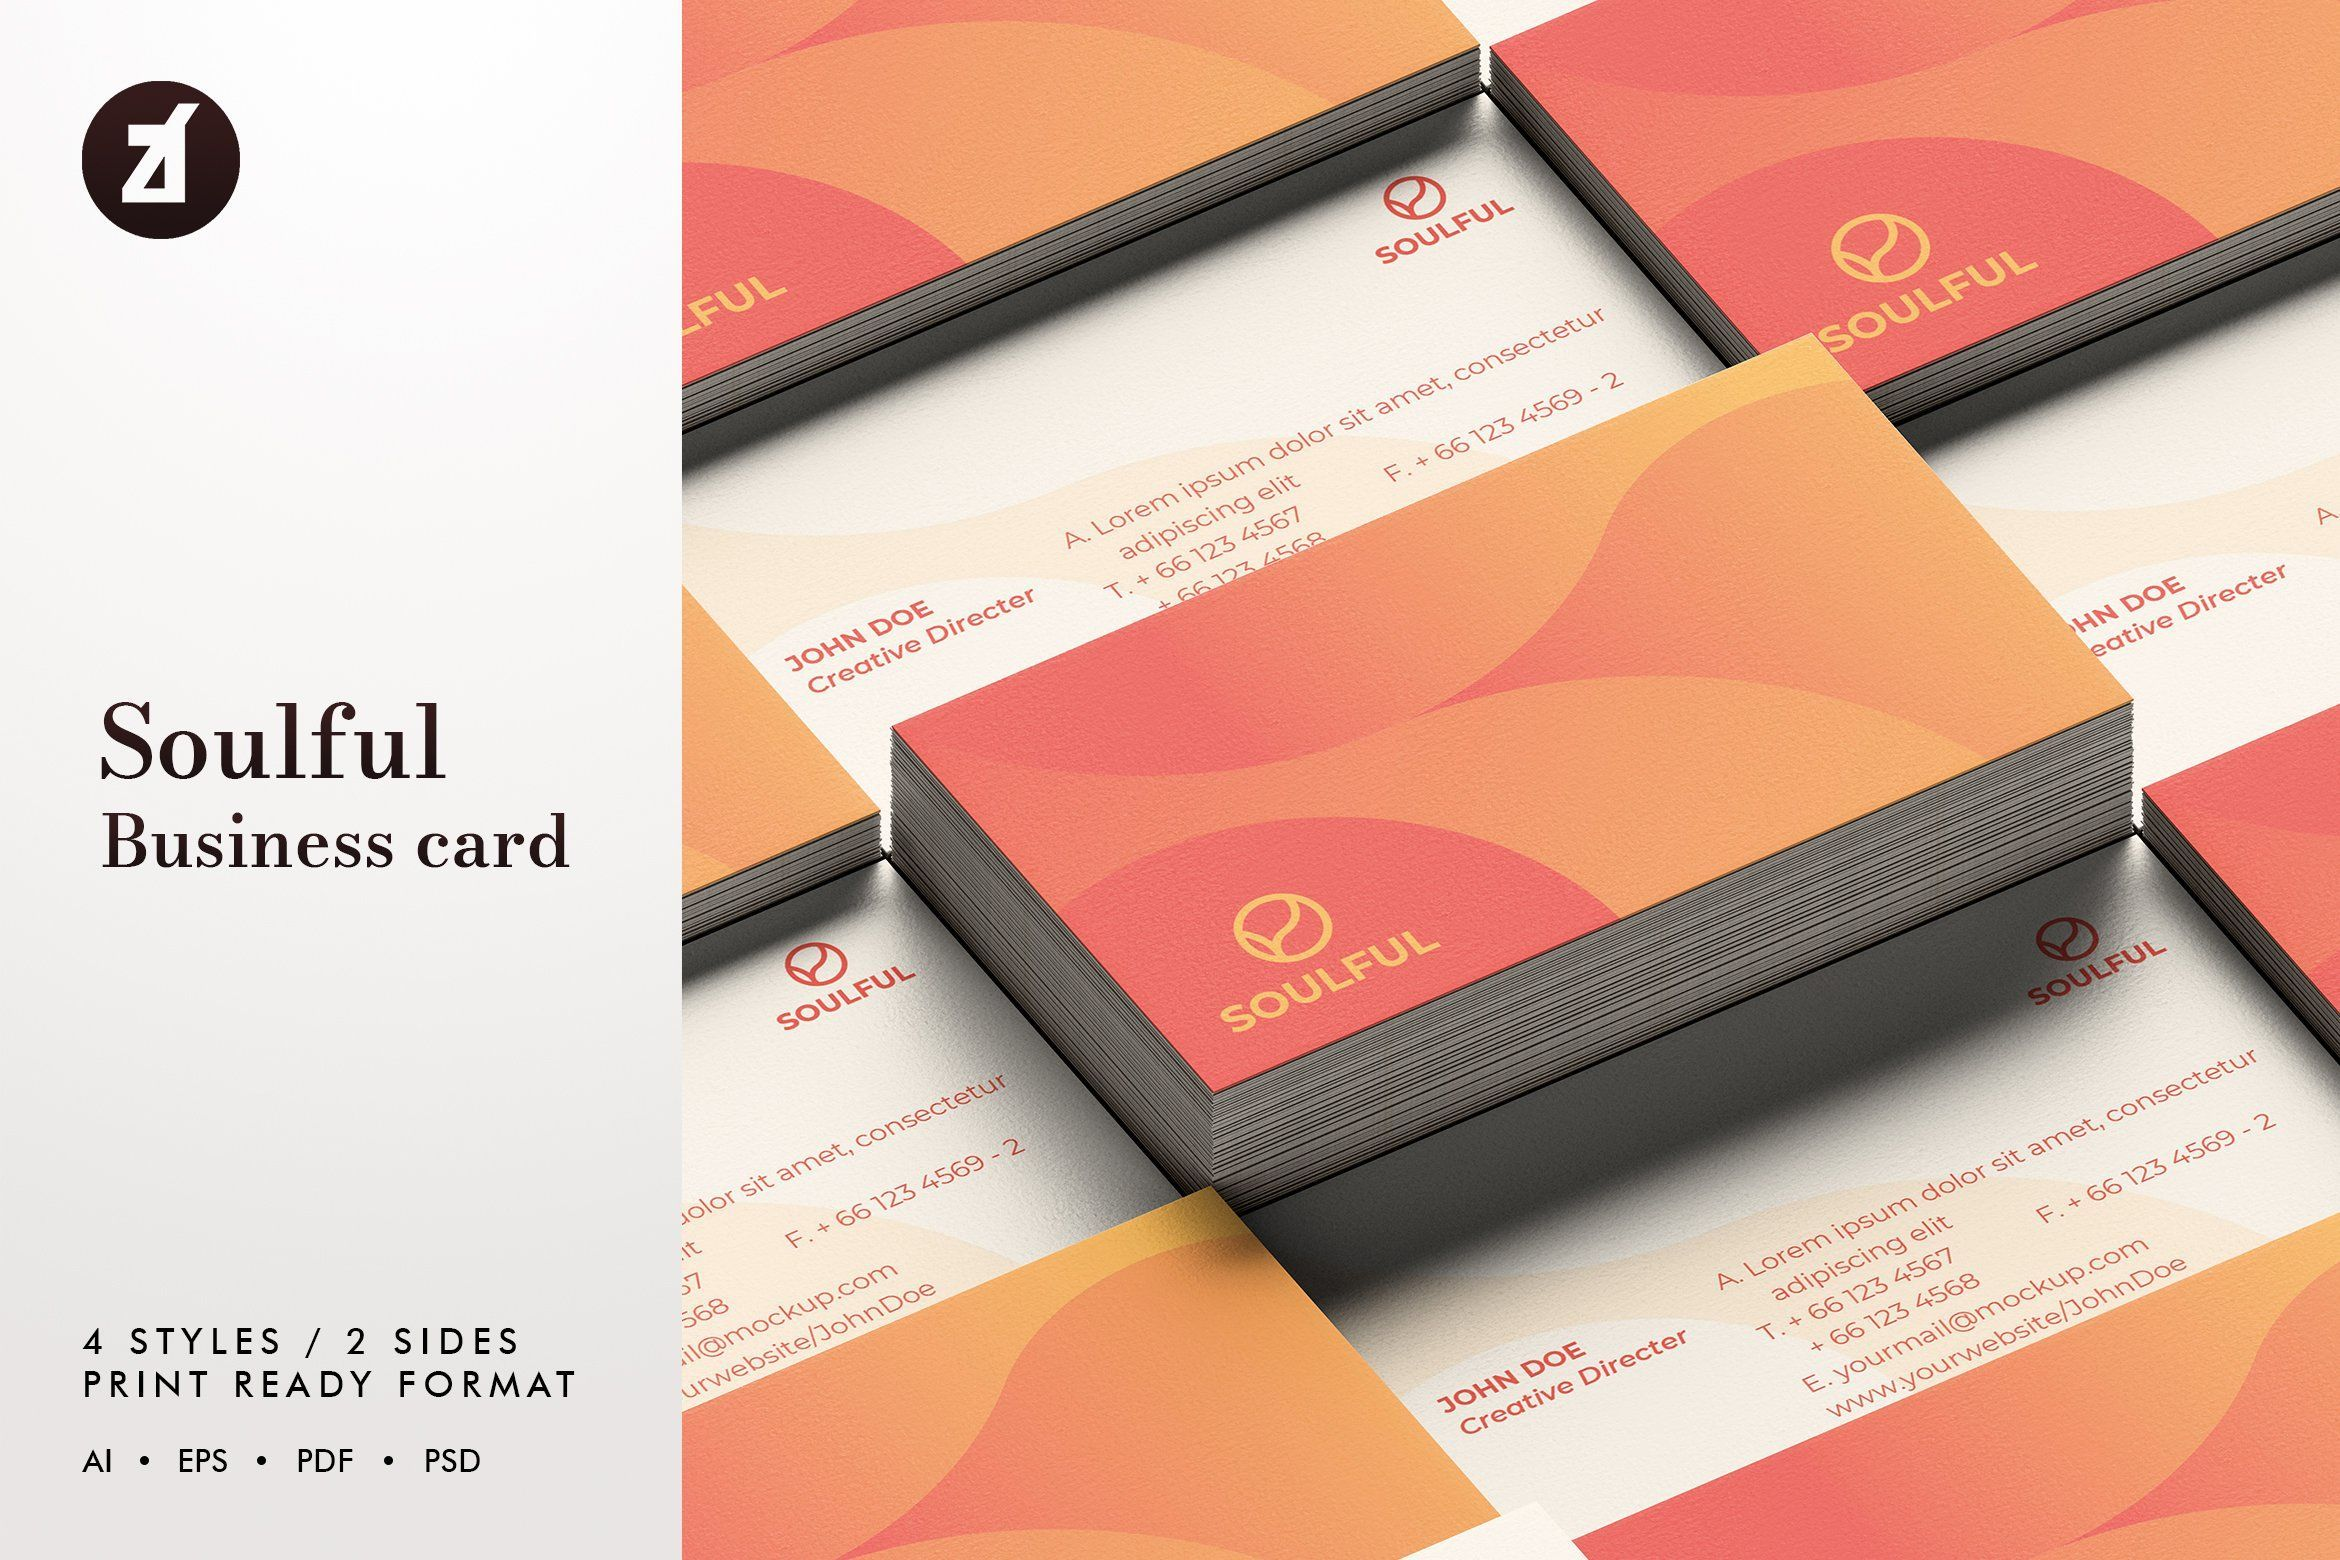 Soulful Business Card Template In 2021 Business Card Template Modern Business Cards Cool Business Cards